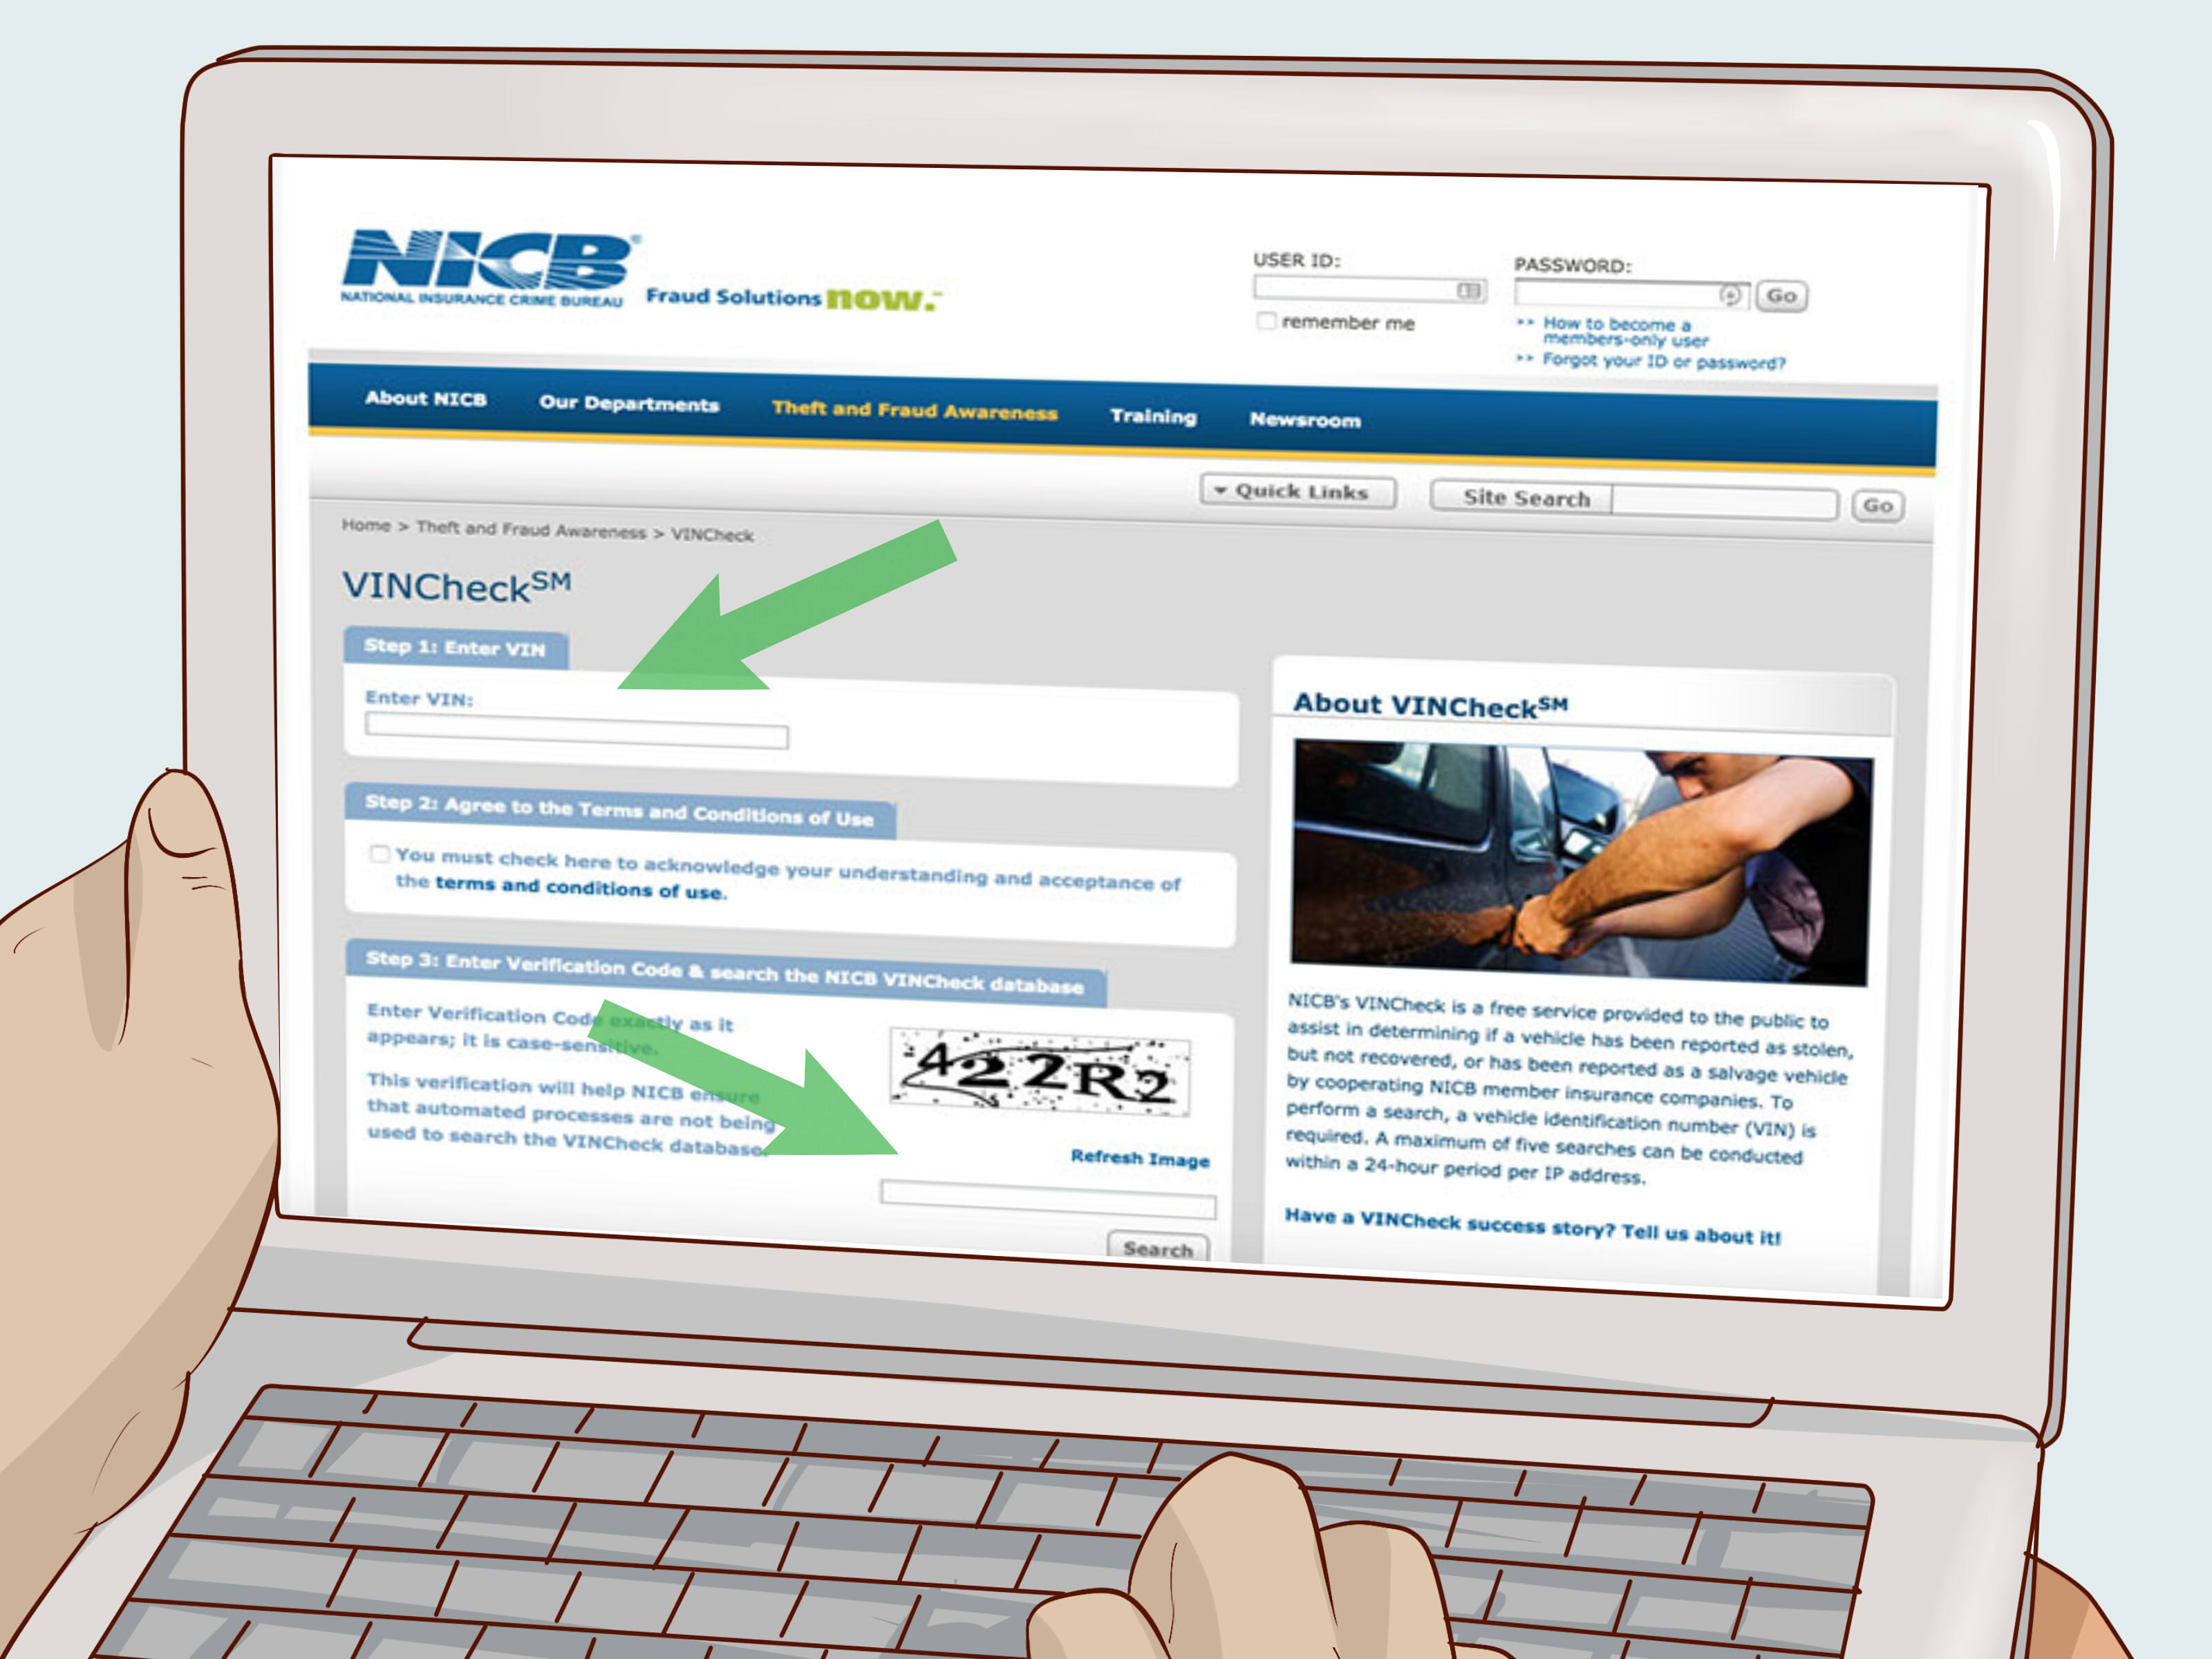 Get Free Carfax Report Lovely 4 Ways to Check Vehicle History for Free Wikihow